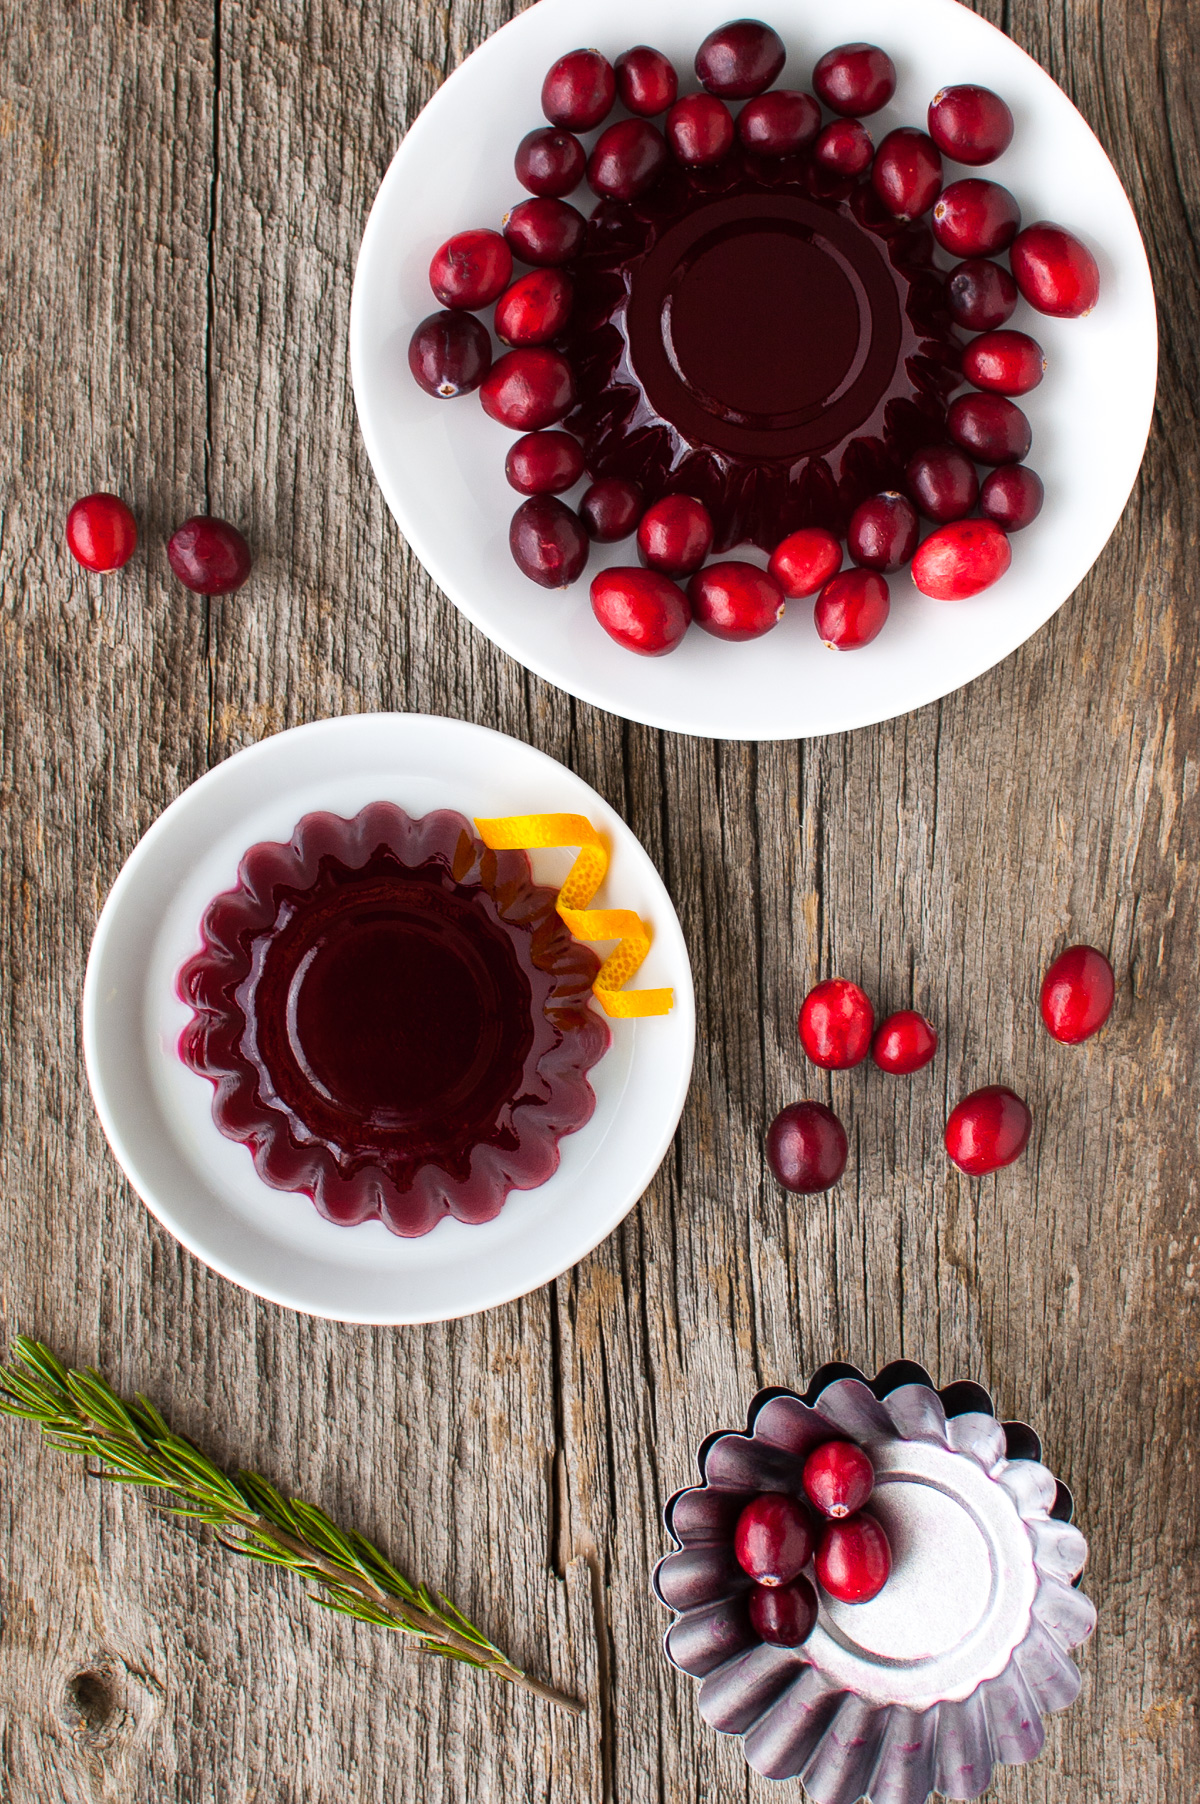 Overhead view of cranberry jelly molds on plates.